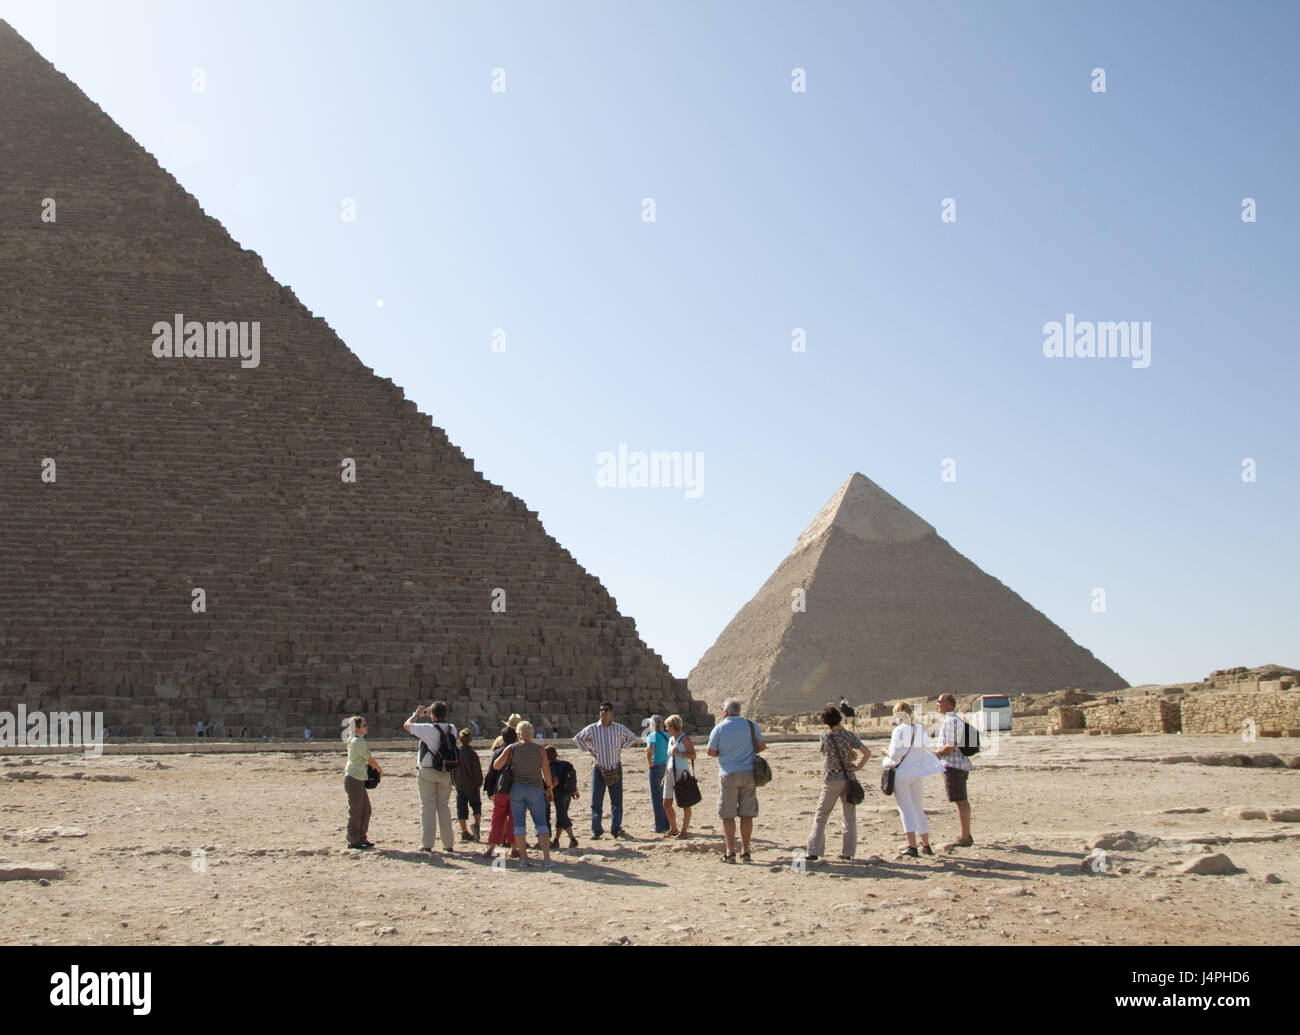 Egypt, Gizeh, pyramids, tourist group, Africa, structures, place of interest, landmark, person, tourist, tourism, - Stock Image